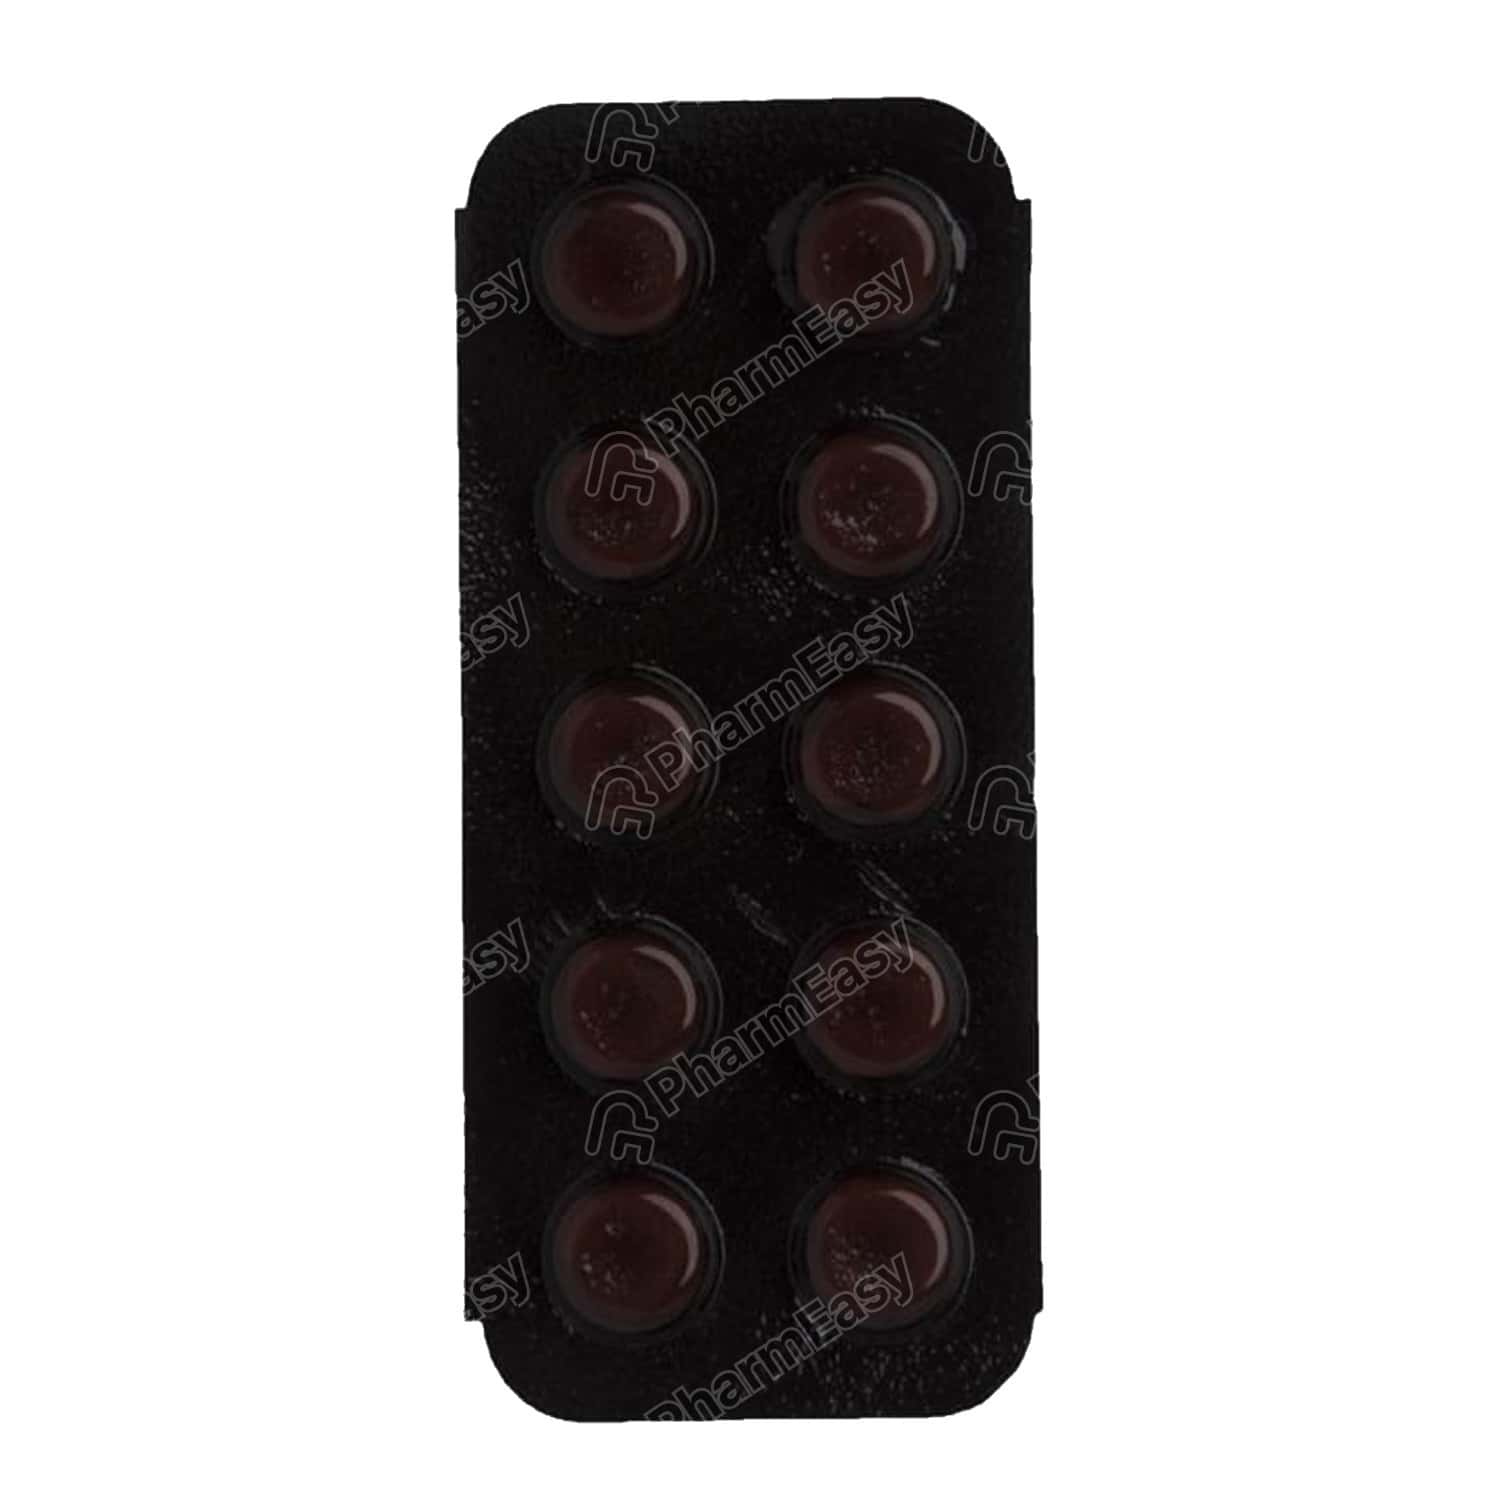 S Numlo 5mg Strip Of 10 Tablets